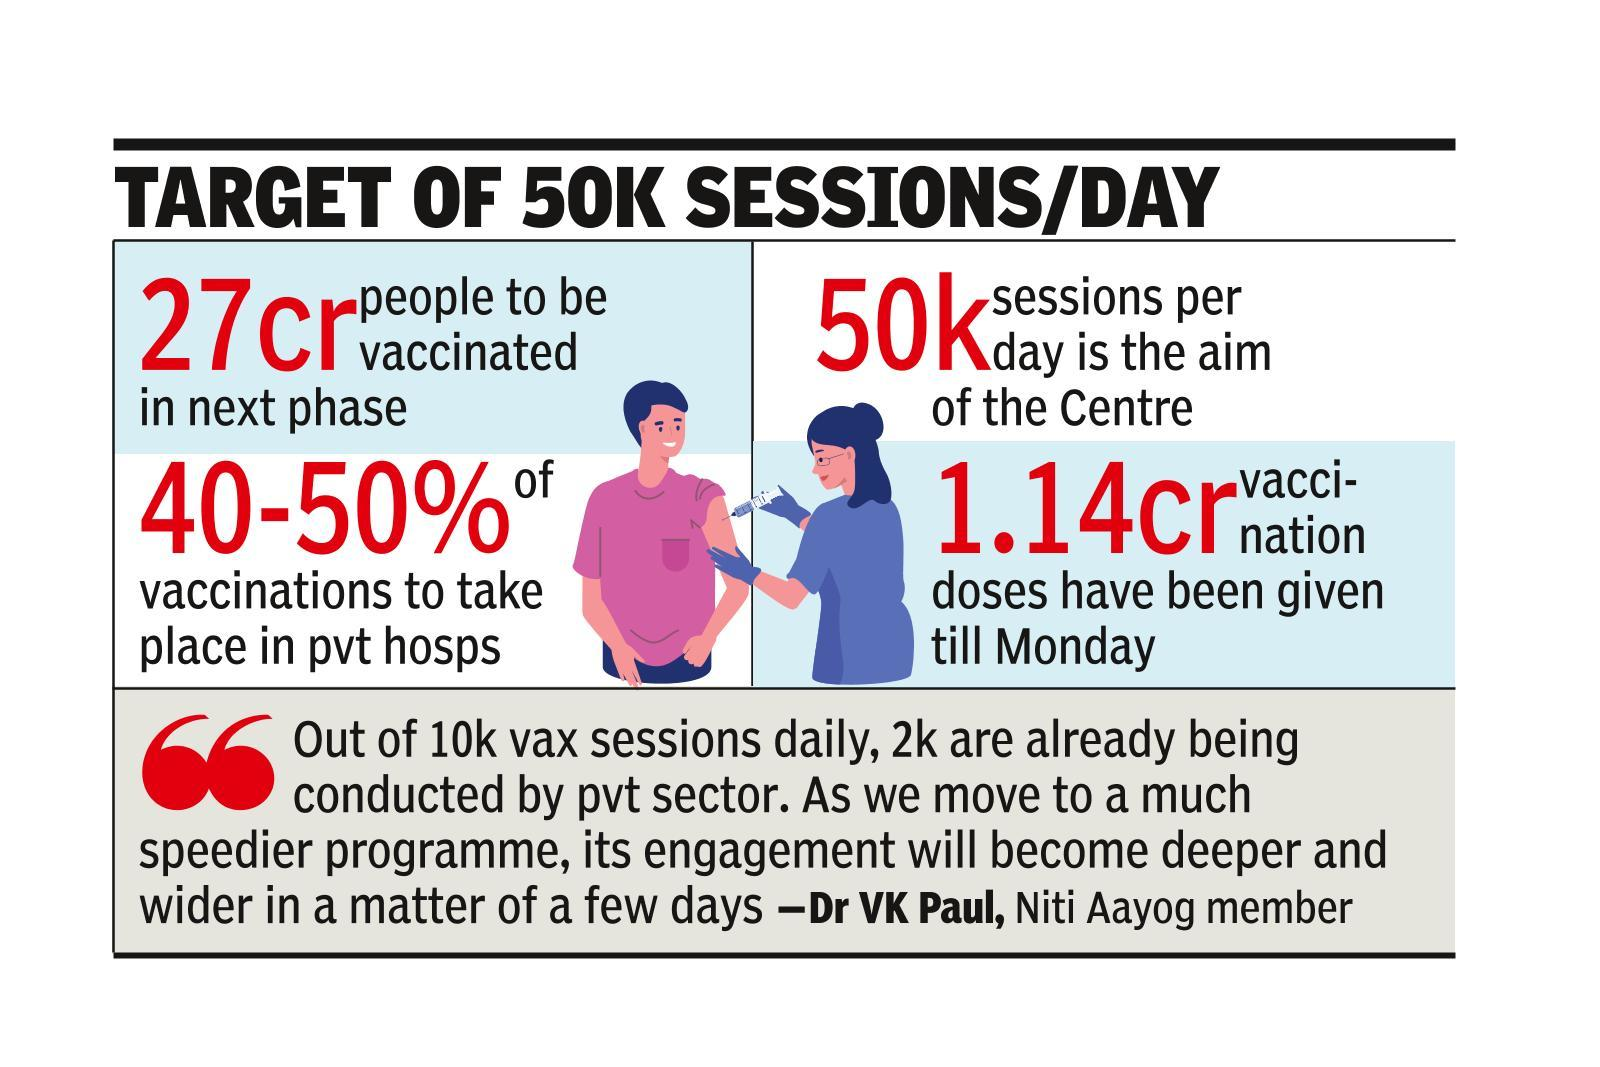 Govt looks to involve pvt sector as vax drive expands to 50+